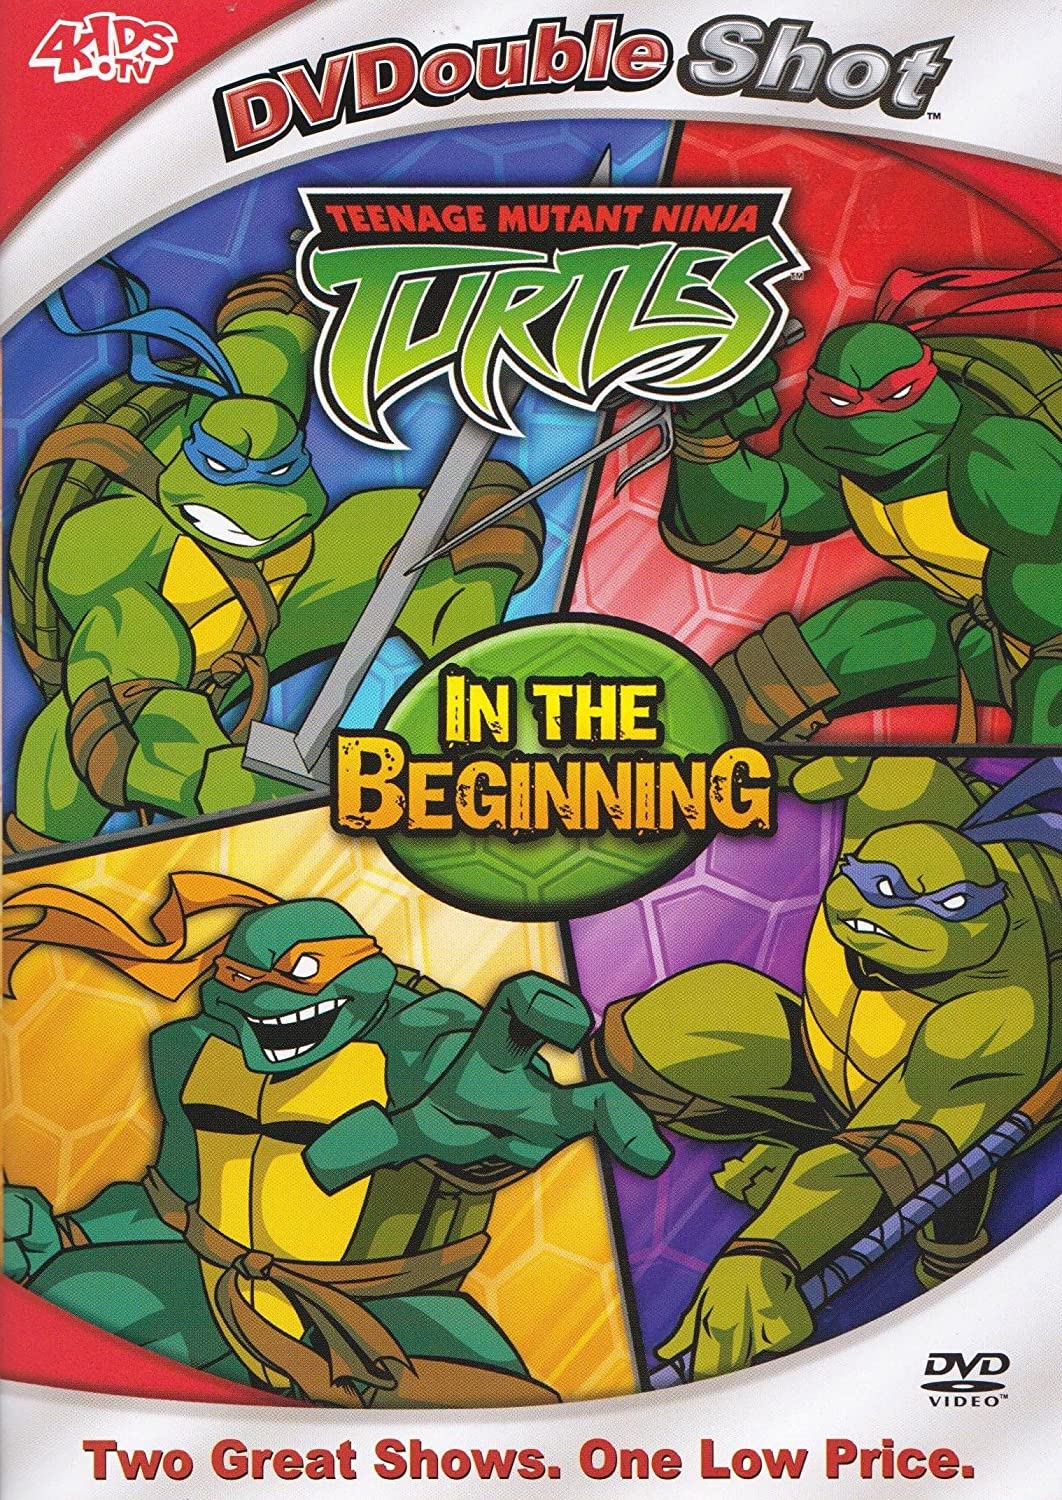 Amazon.com: Teenage Mutant Ninja Turtles: In the Beginning ...